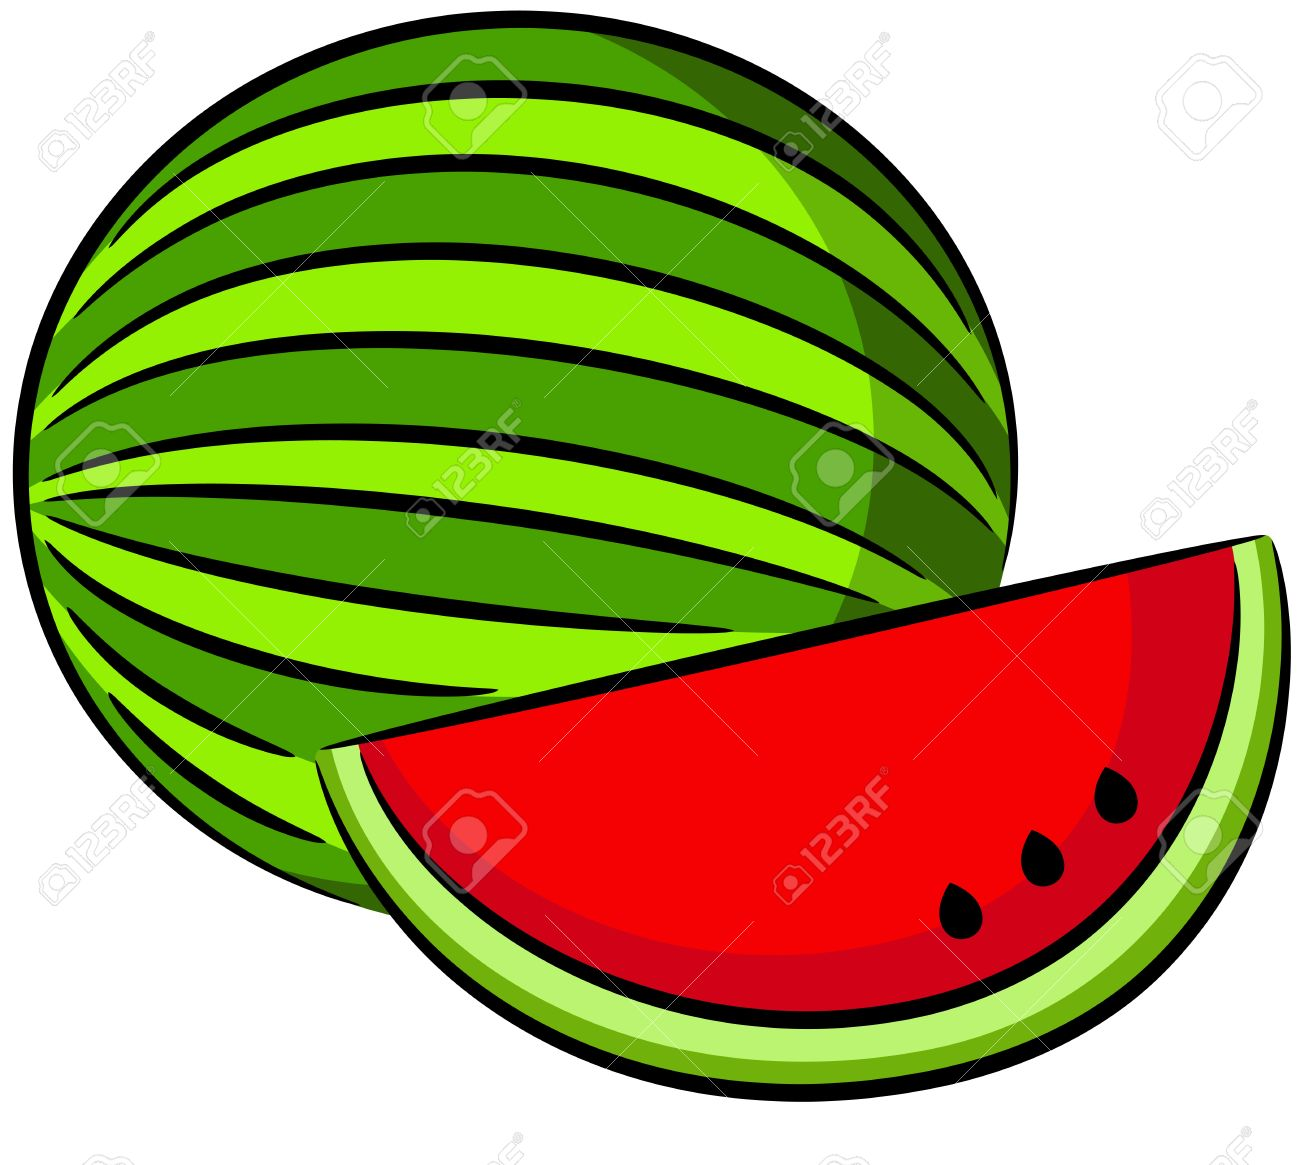 illustration of water melon .